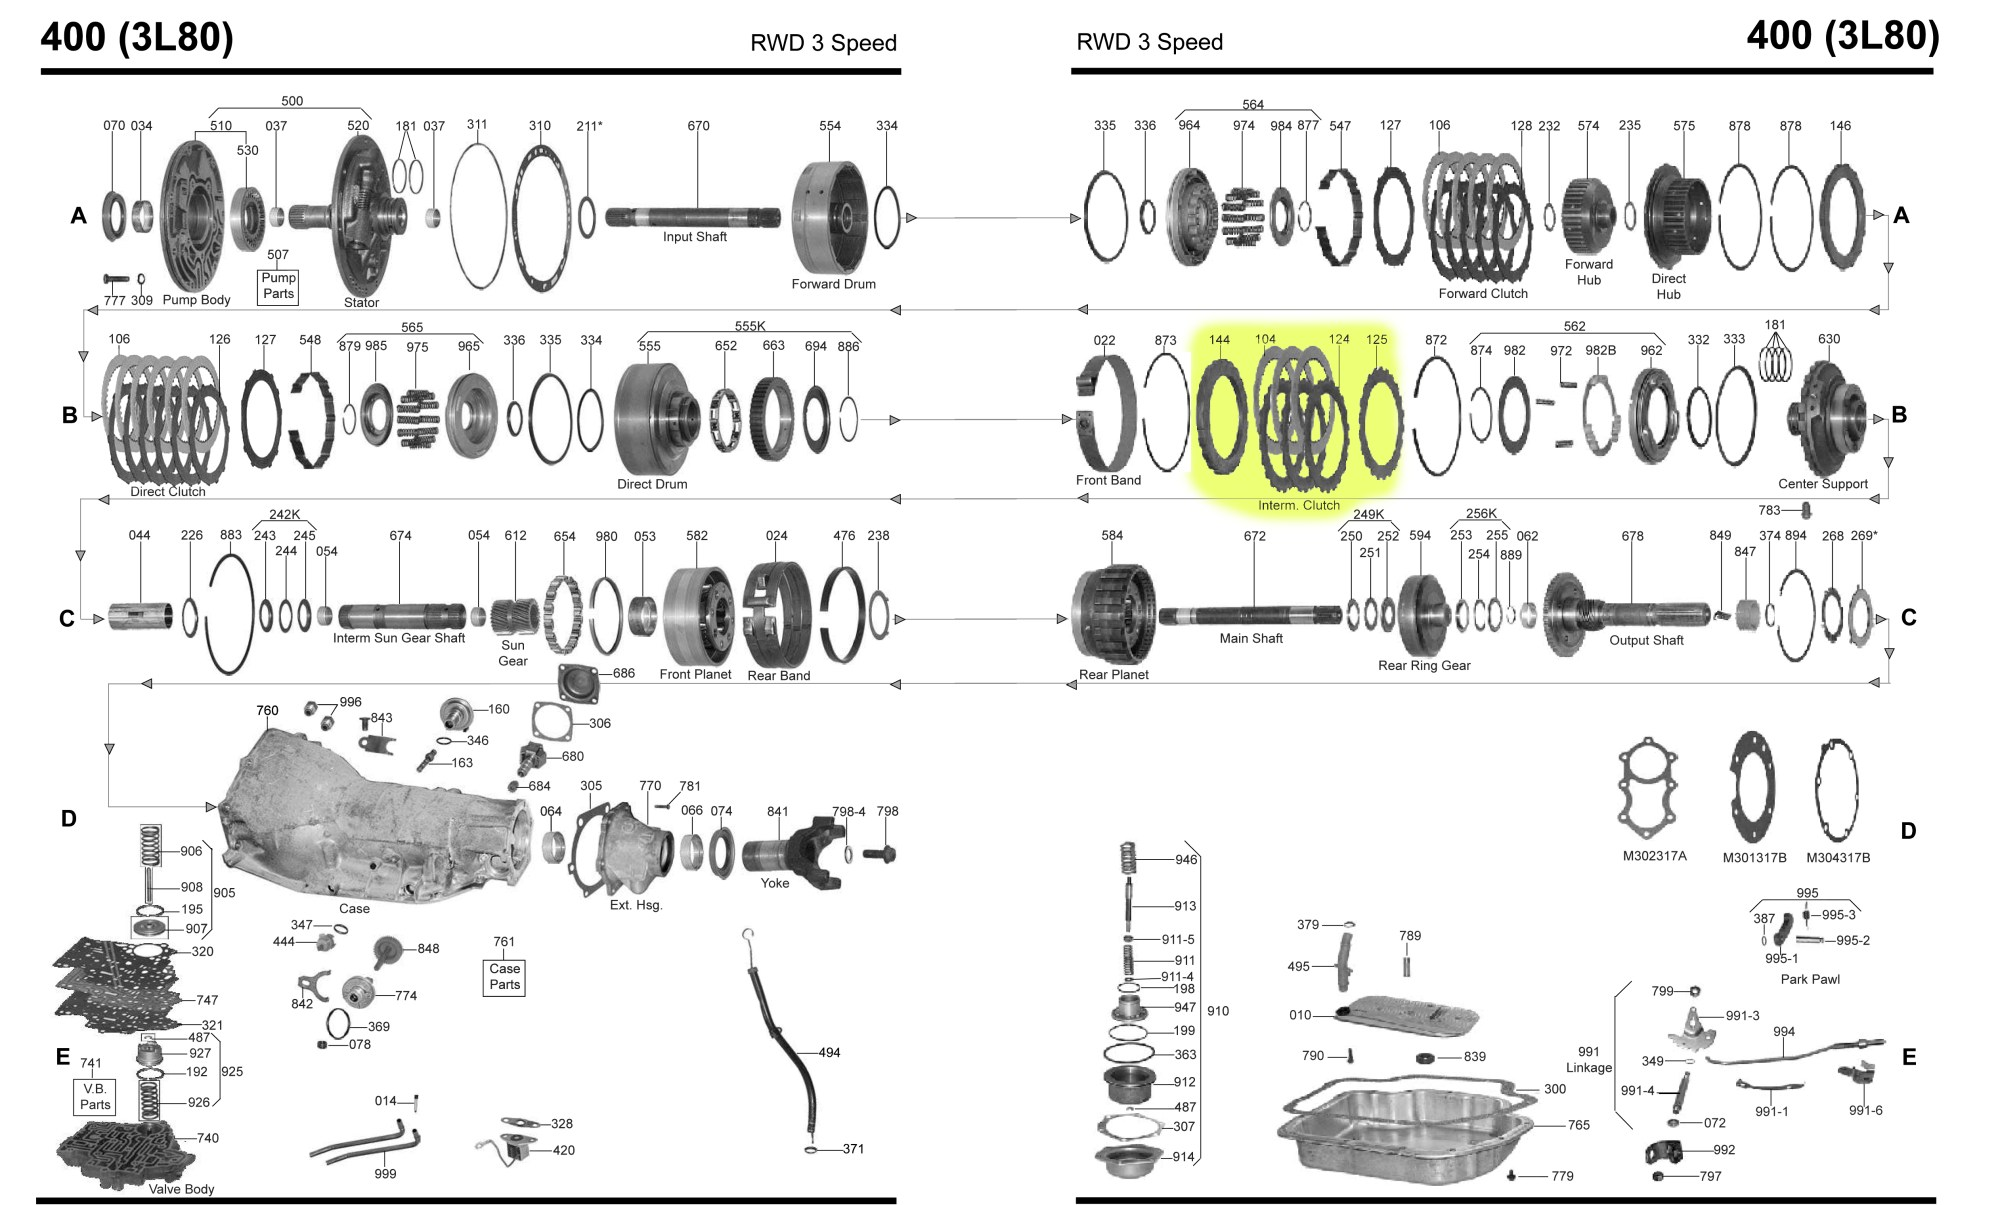 hight resolution of turbo 400 transmission diagram autos post 6 11 nuerasolar co u2022 1965 turbo 400 transmission identification chevy 400 transmission diagram online wiring